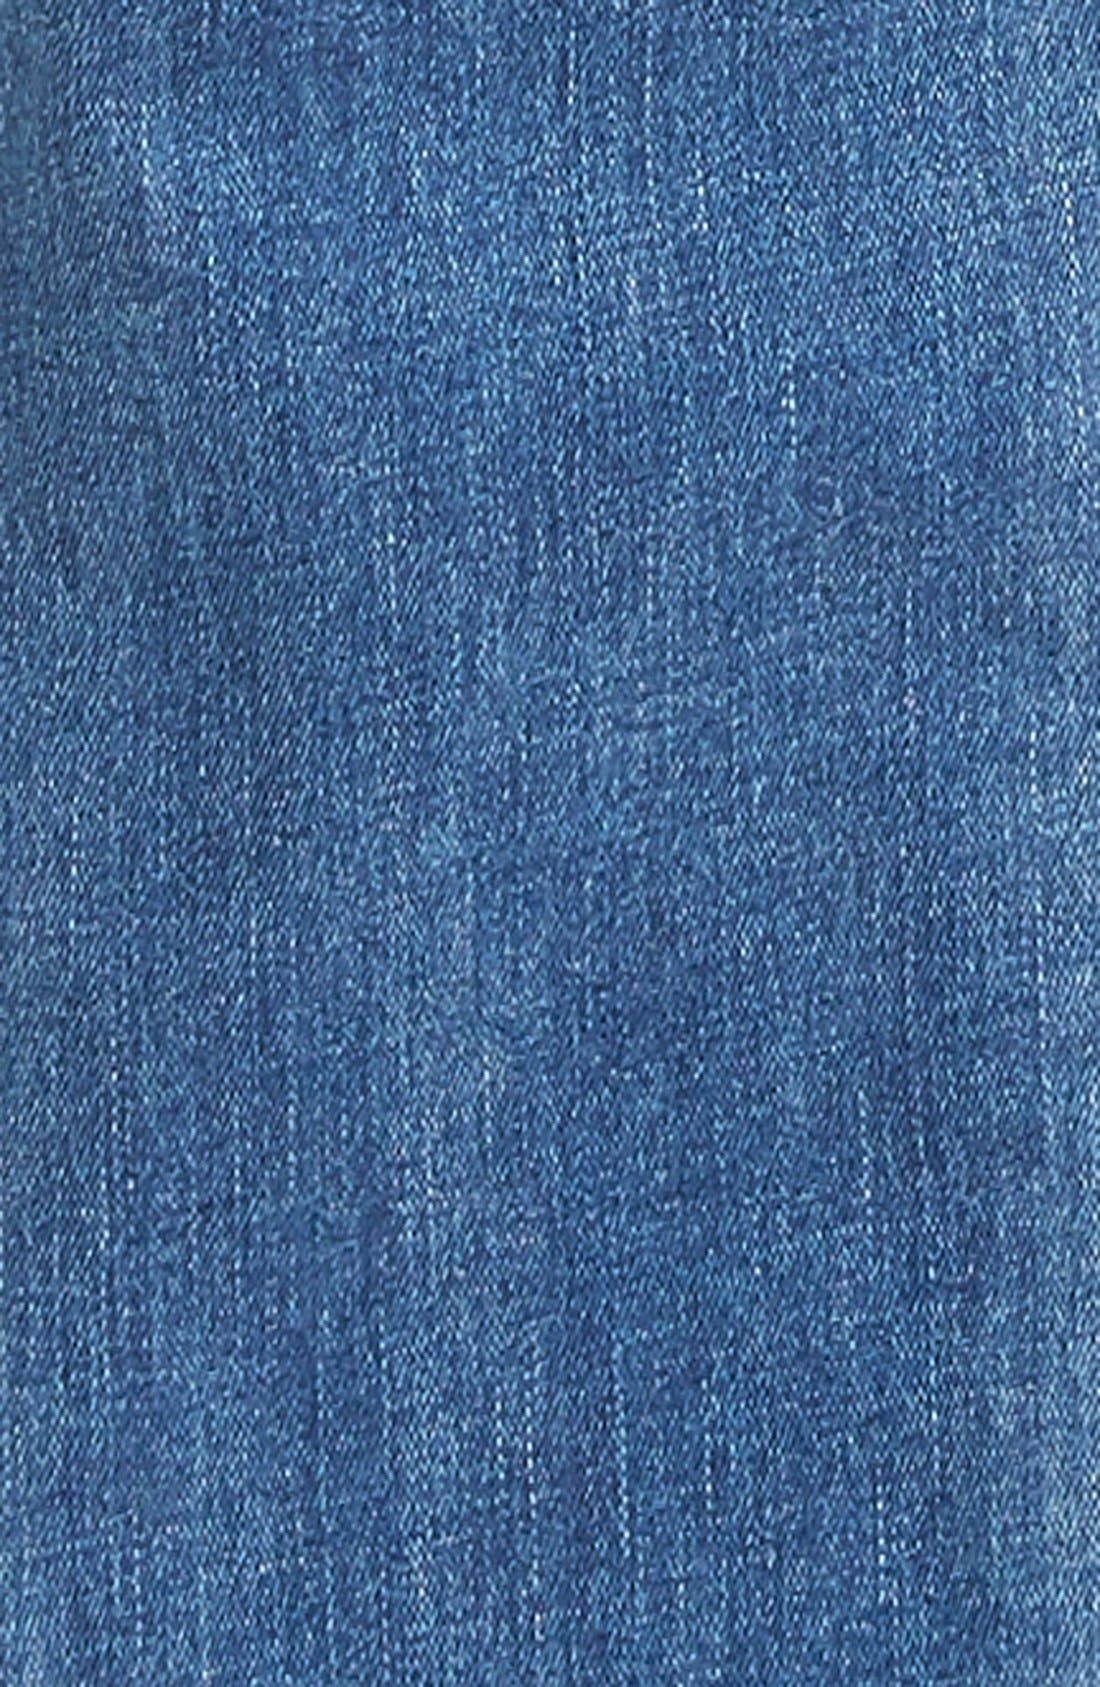 'Dawn' Distressed Jeans,                             Alternate thumbnail 3, color,                             456